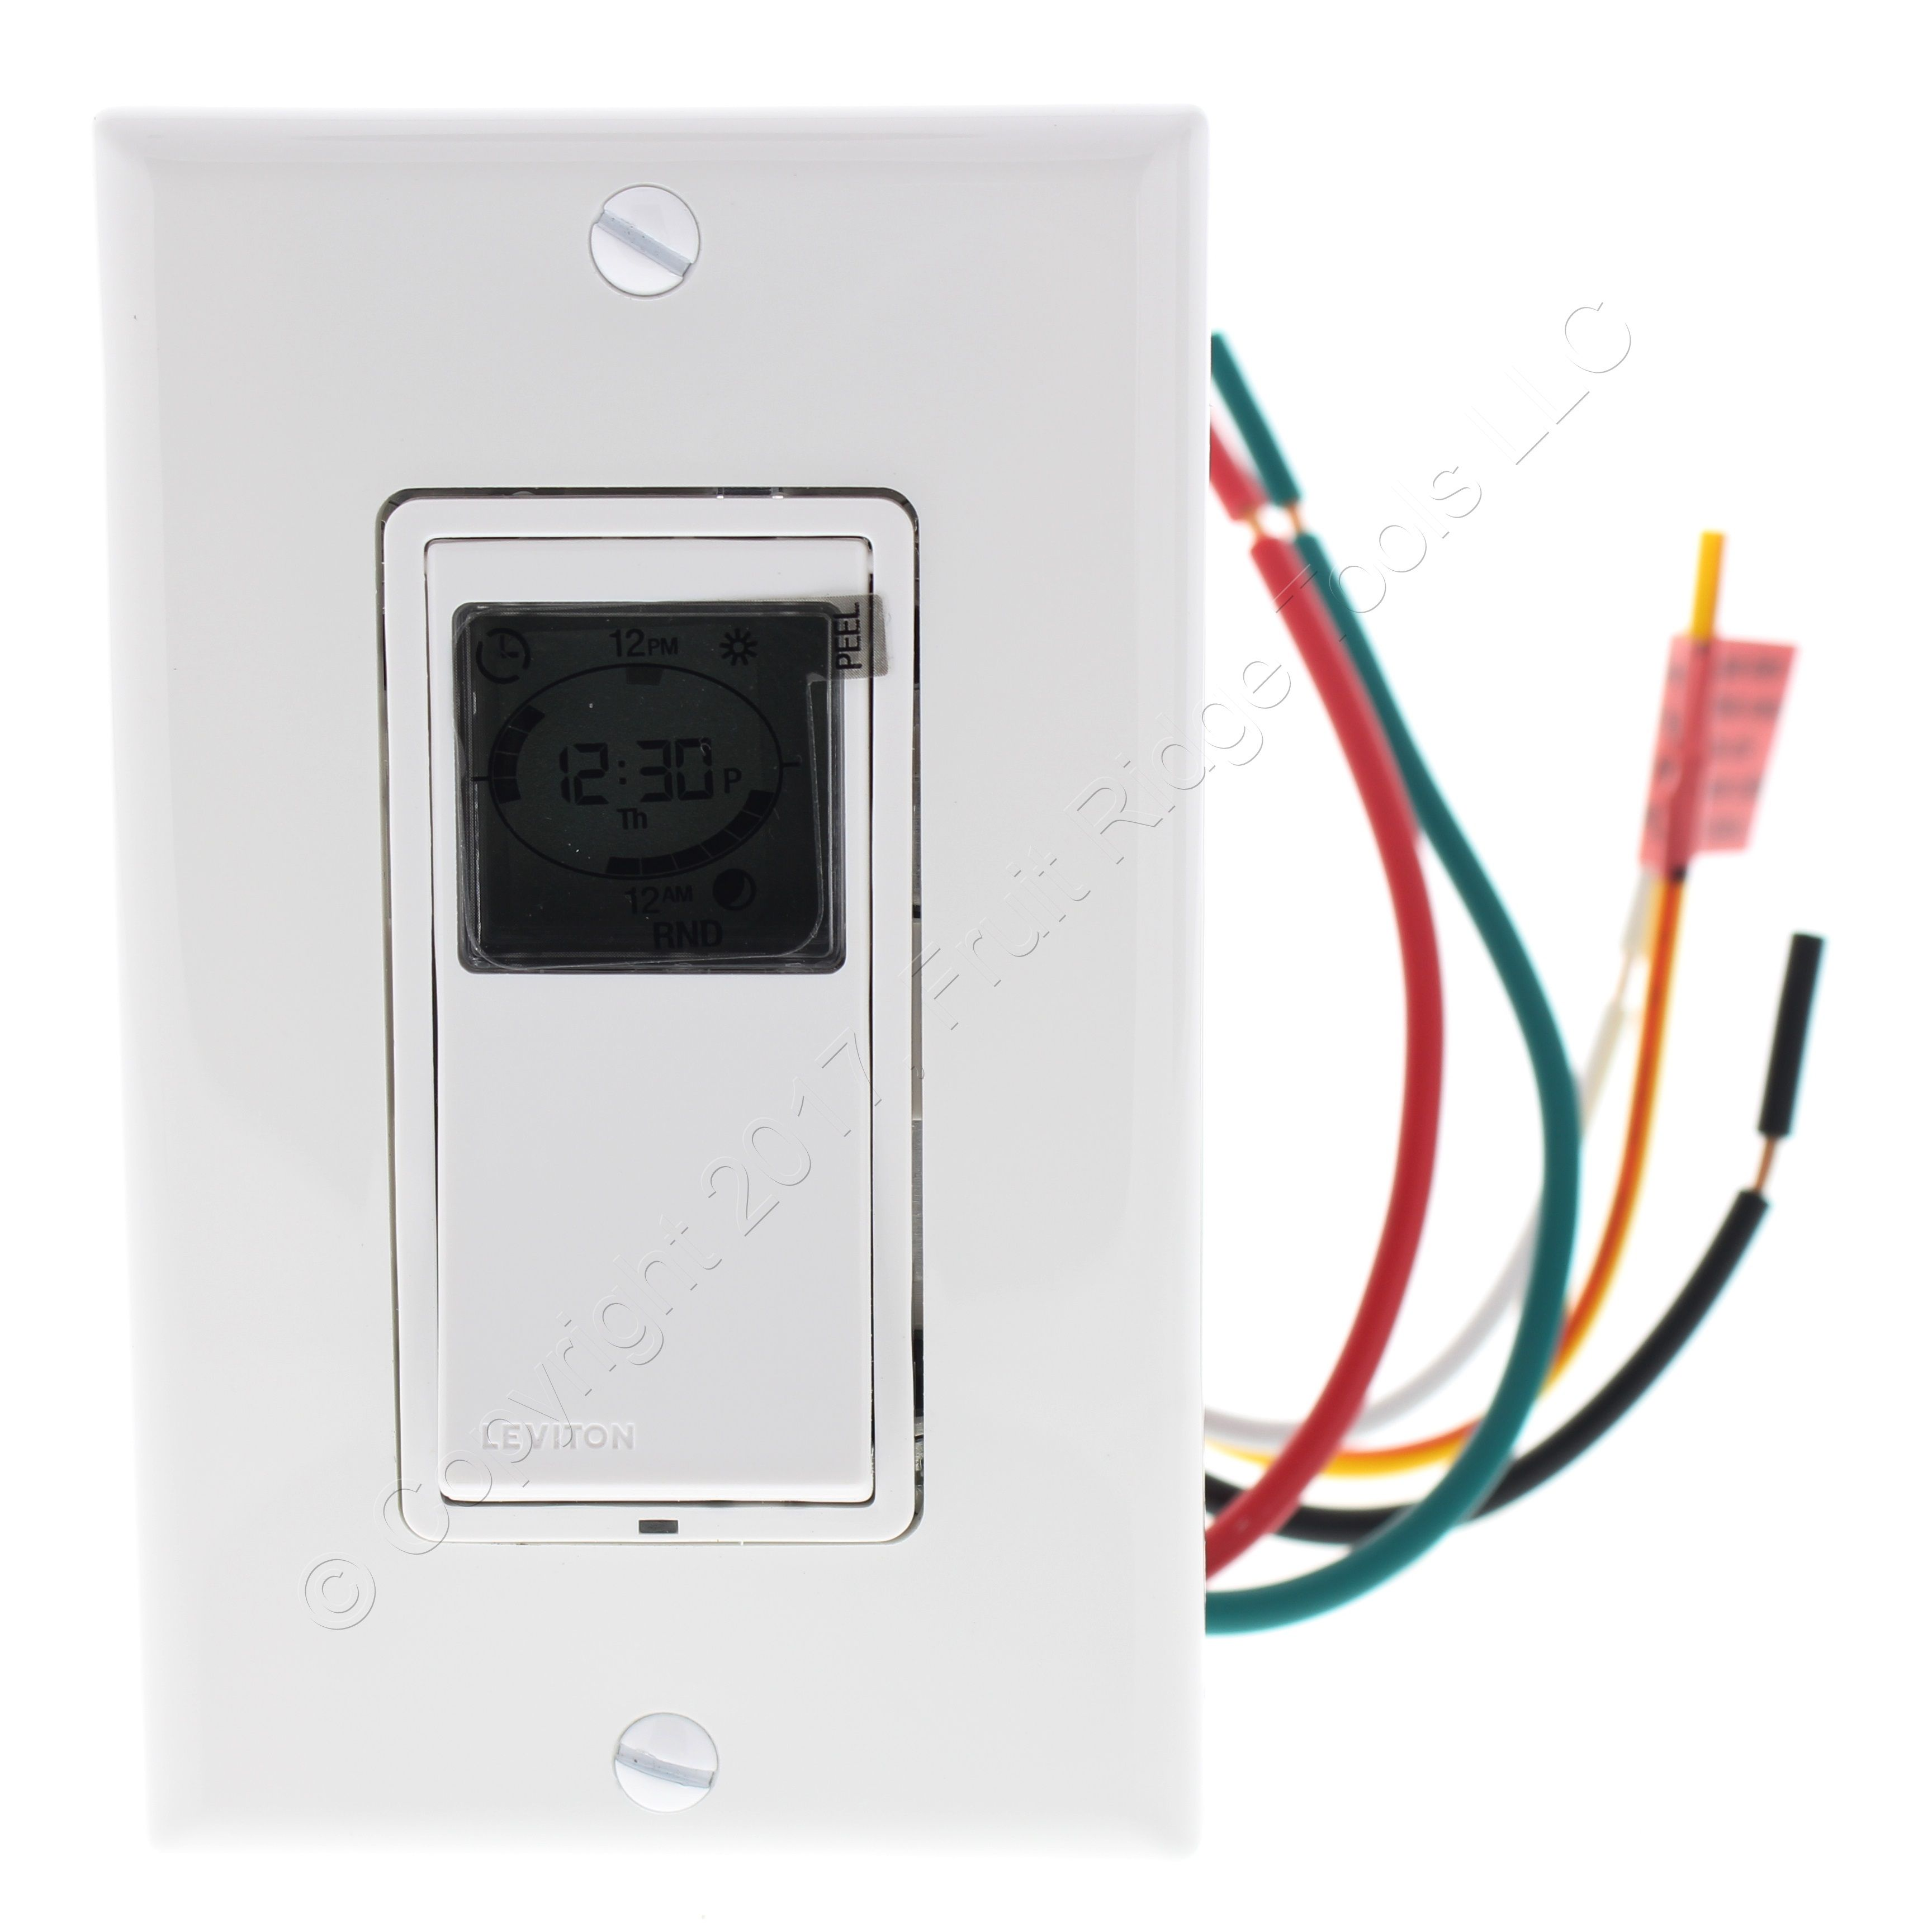 Leviton Wiring Devices Philippines Diagram Home Wall Light Switch New Vizia 24 Hour Programmable Timer Astronomical Switches